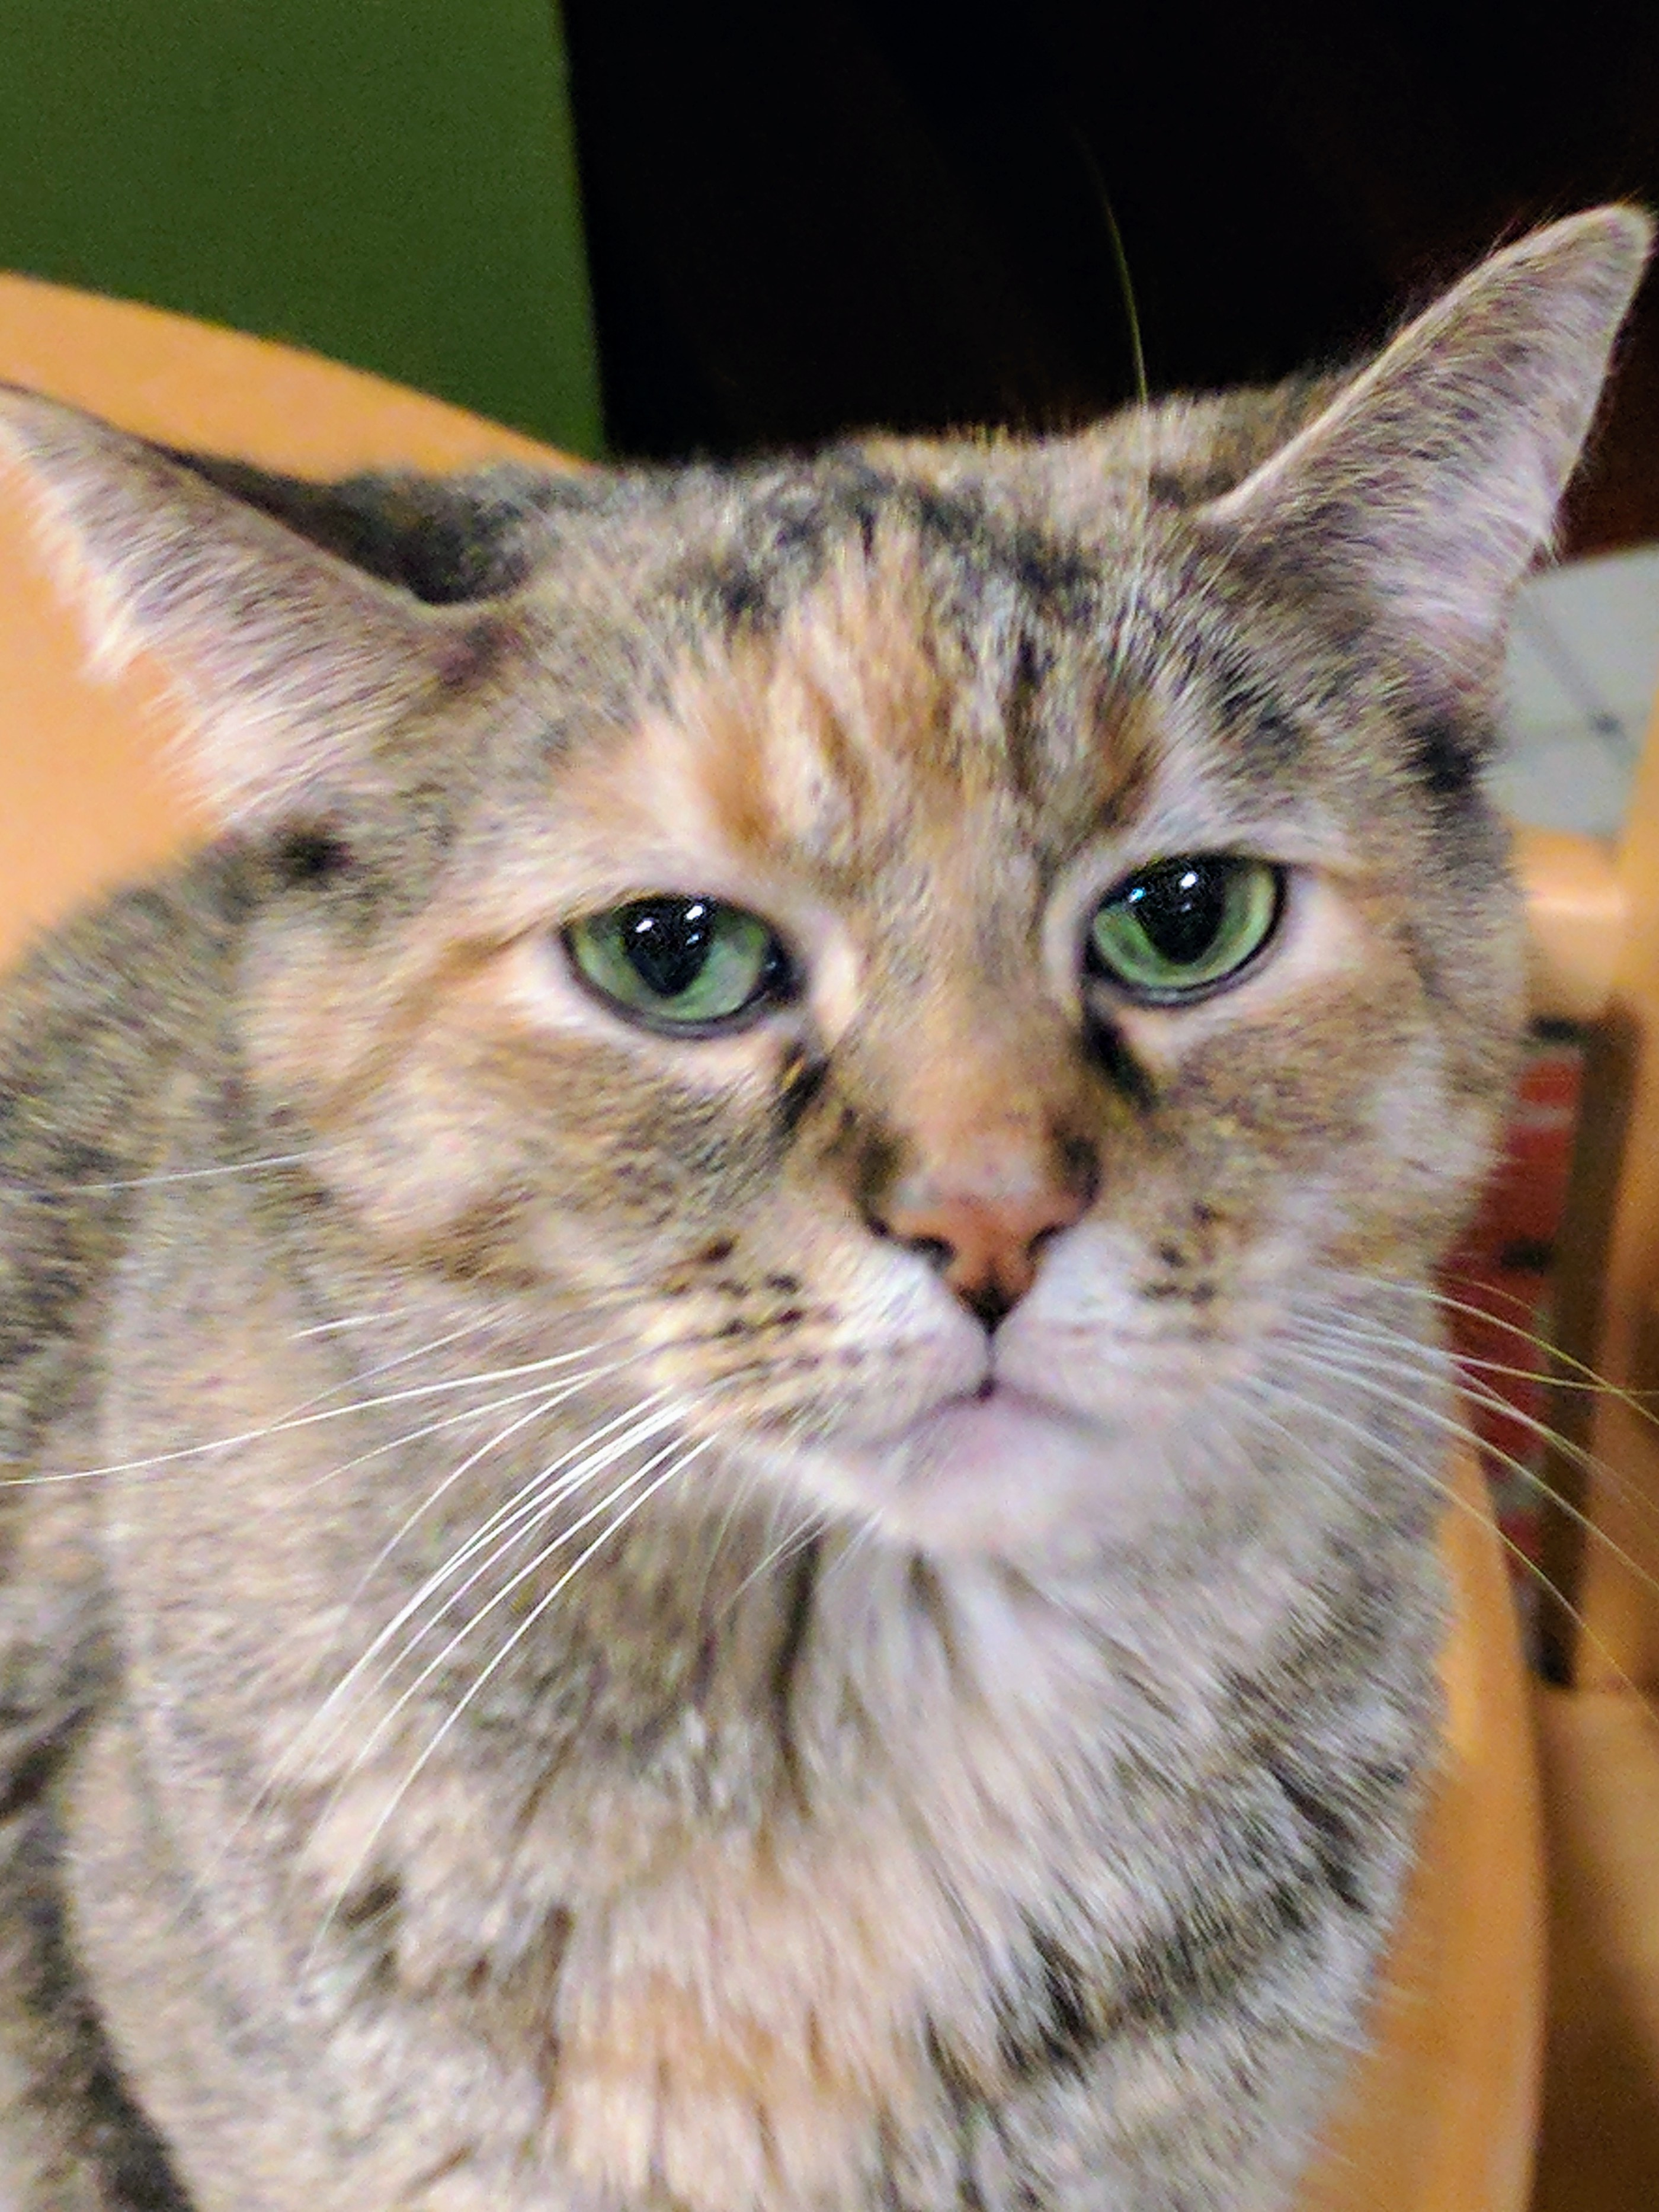 Sophie had a sad story and was recently adopted.